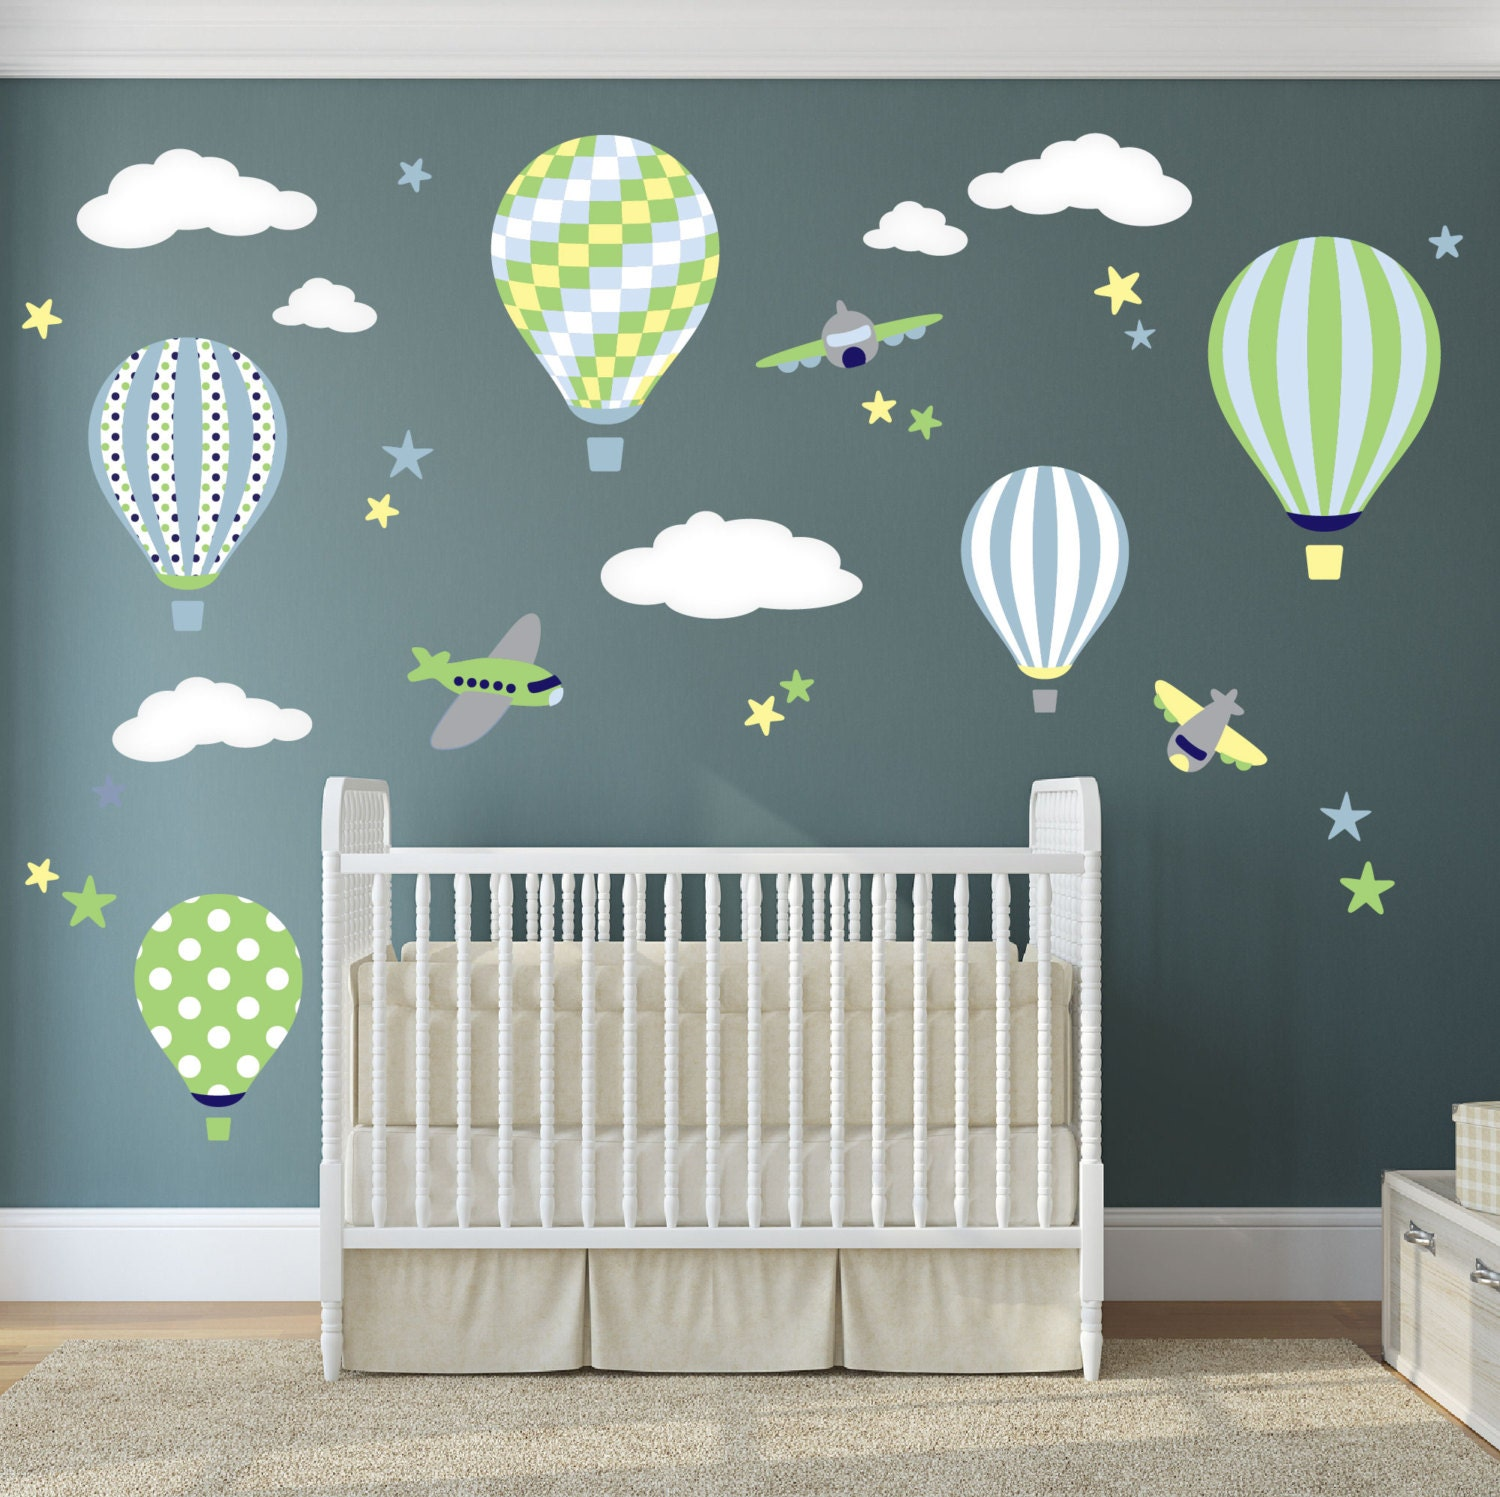 Balloon decal plane wall stickers yellow stars and white zoom amipublicfo Choice Image